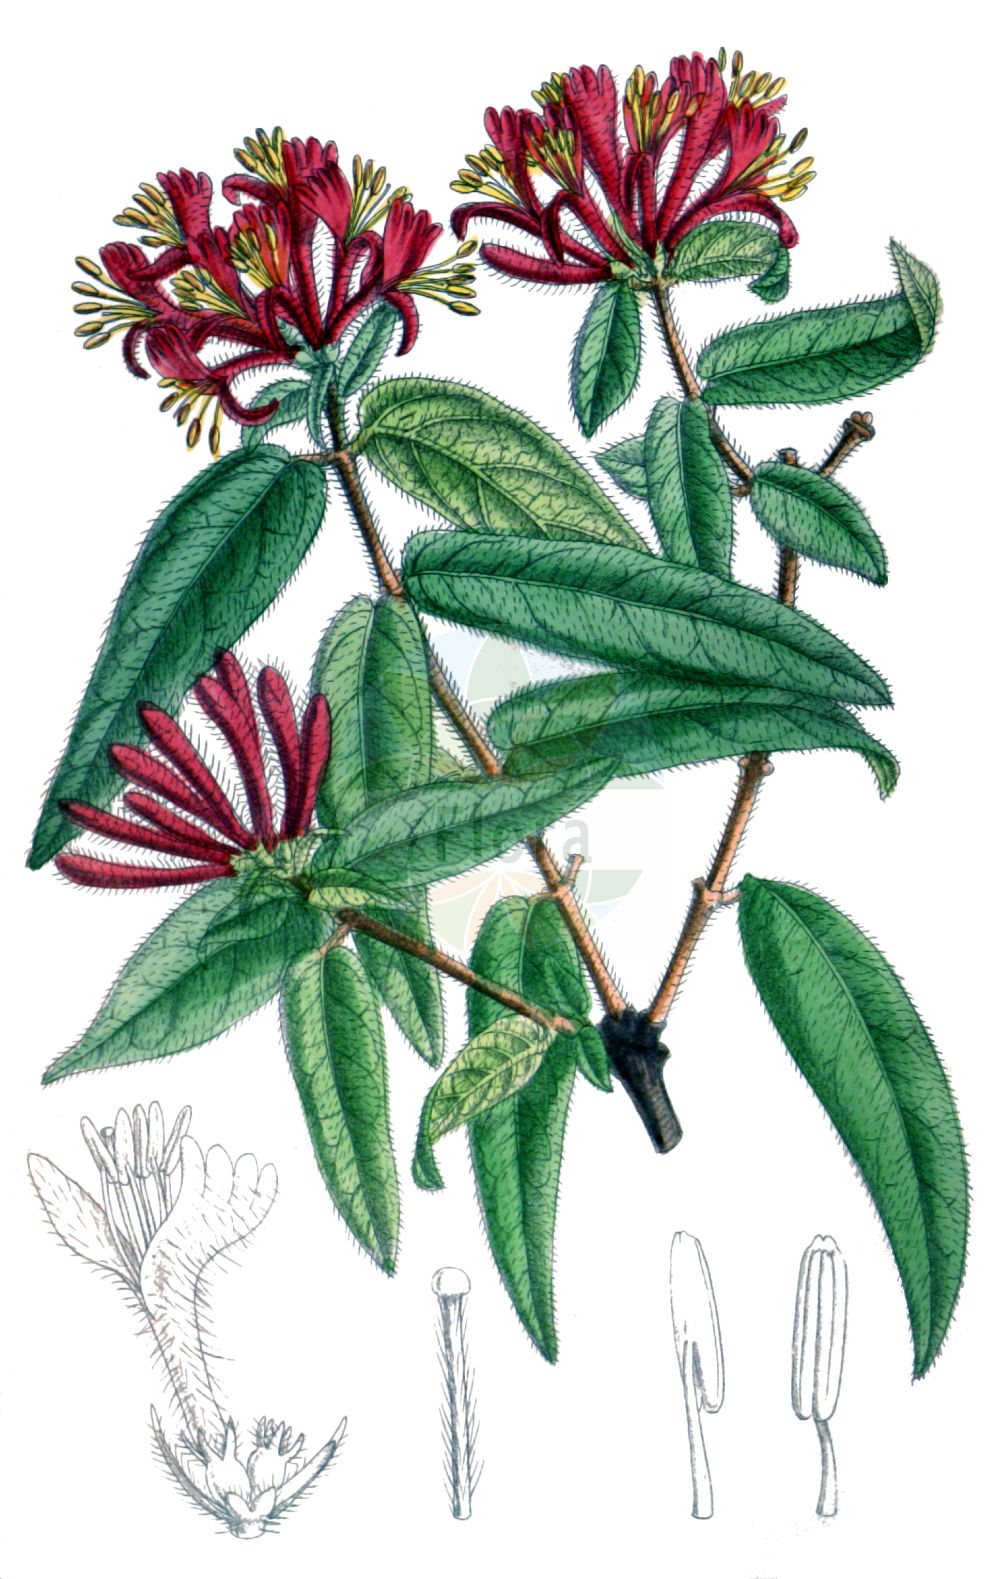 Historische Abbildung von Lonicera henryi (Henrys Heckenkirsche - Henry's Honeysuckle). Das Bild zeigt Blatt, Bluete, Frucht und Same. ---- Historical Drawing of Lonicera henryi (Henrys Heckenkirsche - Henry's Honeysuckle).The image is showing leaf, flower, fruit and seed.(Lonicera henryi,Henrys Heckenkirsche,Henry's Honeysuckle,Lonicera henryi,Henrys Heckenkirsche,Henry's Honeysuckle,Lonicera,Heckenkirsche,Honeysuckle,Caprifoliaceae,Geissblattgewaechse,Honeysuckle family,Blatt,Bluete,Frucht,Same,leaf,flower,fruit,seed,Curtis Botanical Magazine (1909))